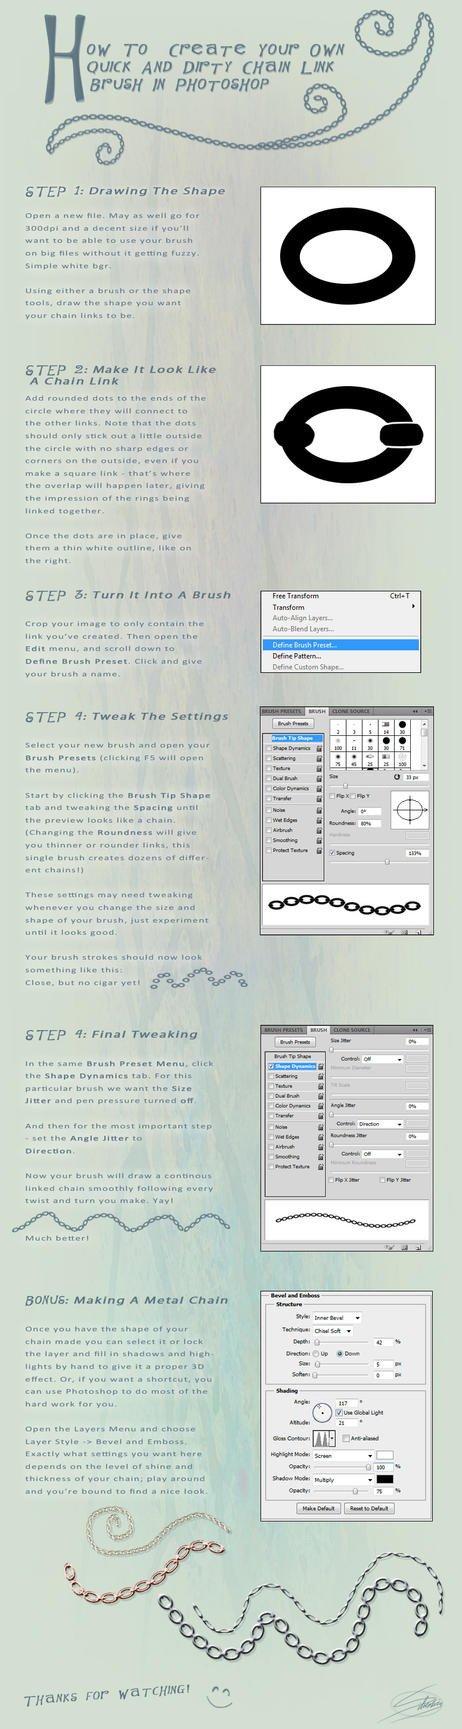 How To Create A Chain Link Brush In PS by silvestris